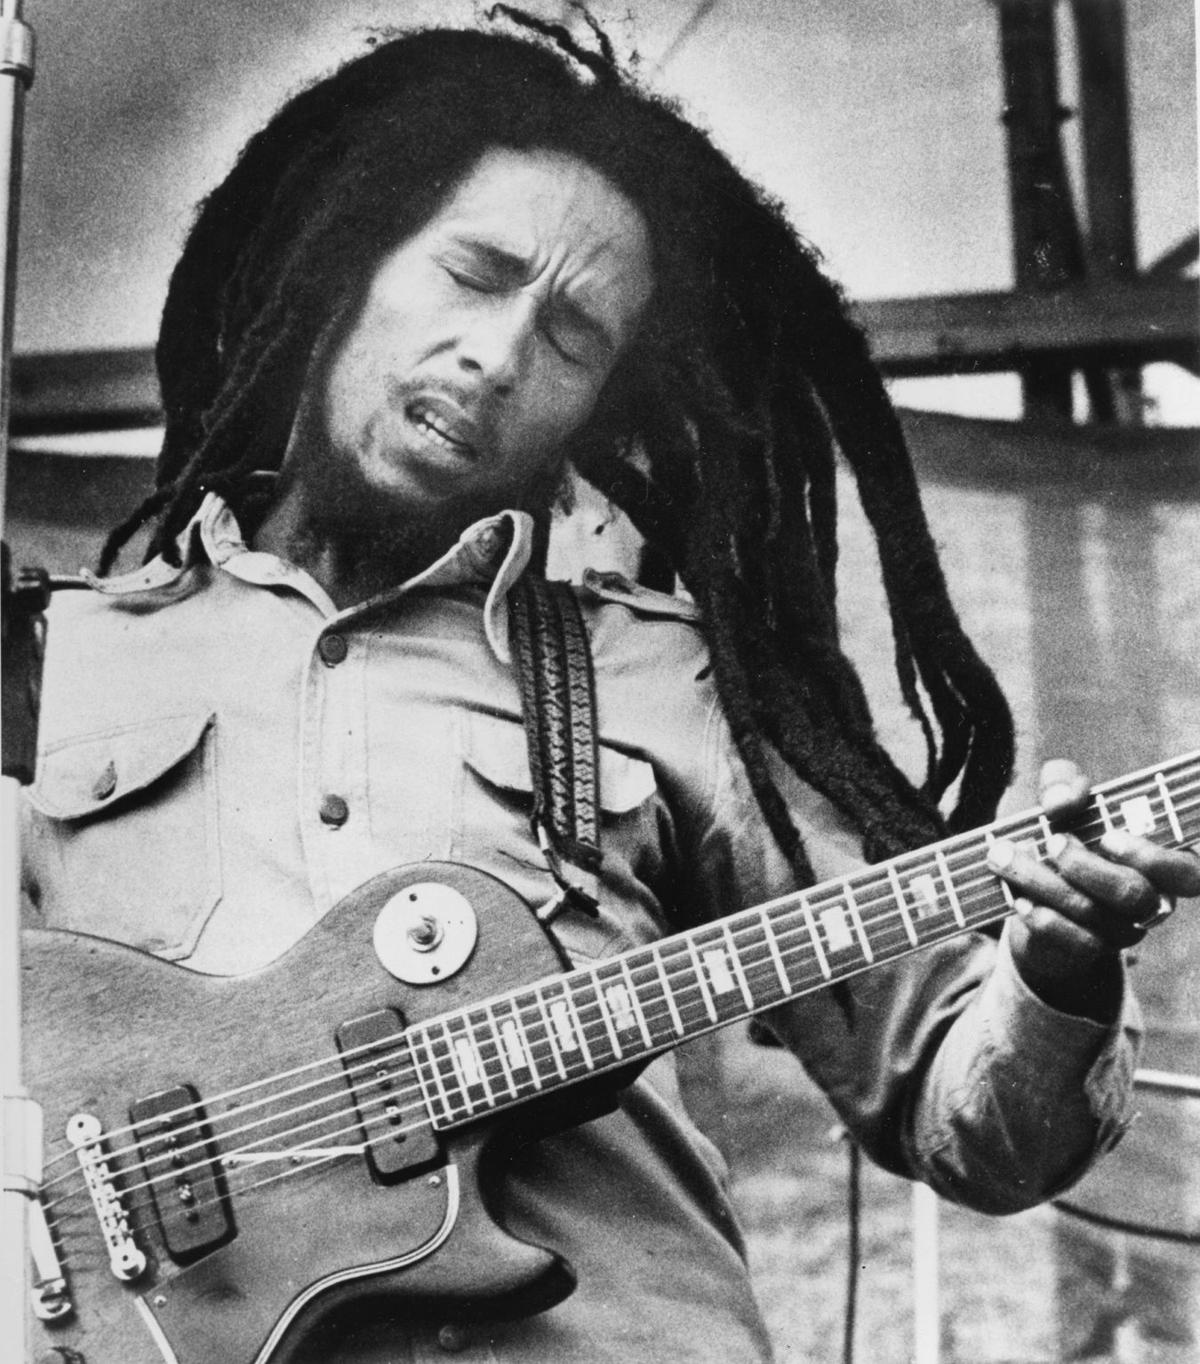 Raising Cane's settles dispute with Bob Marley estate over 'One Love'